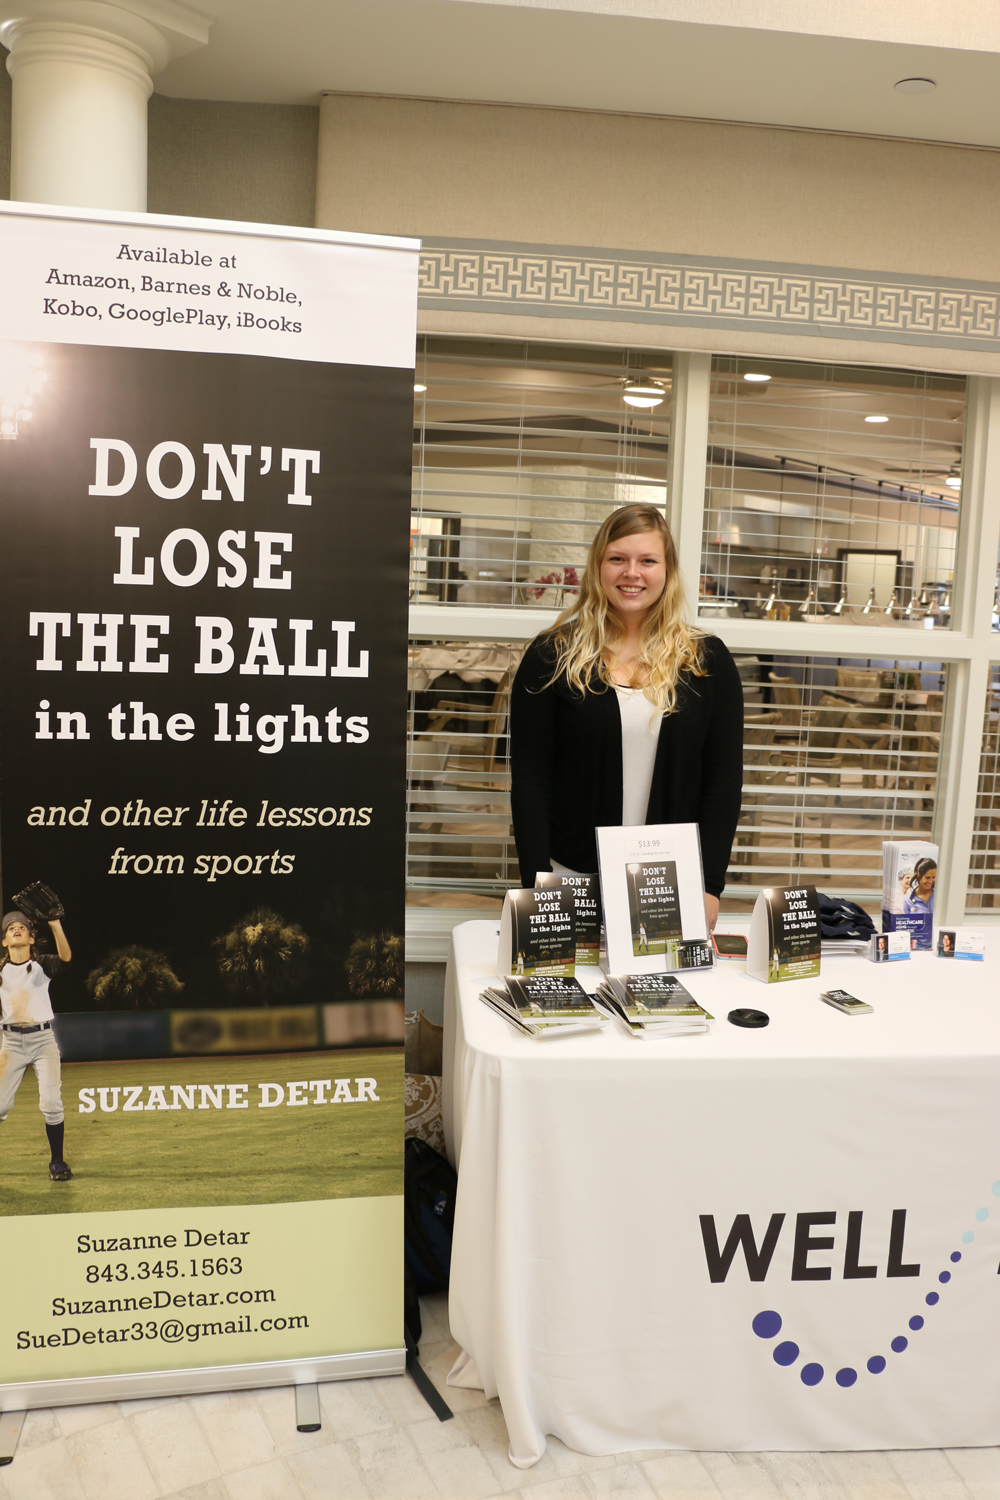 Daniel Island resident Cora Petyak sold multiple copies of Daniel Island News publisher Suzanne Detar's book, Don't Lose the Ball in the Lights and Other Life Lessons from Sports.